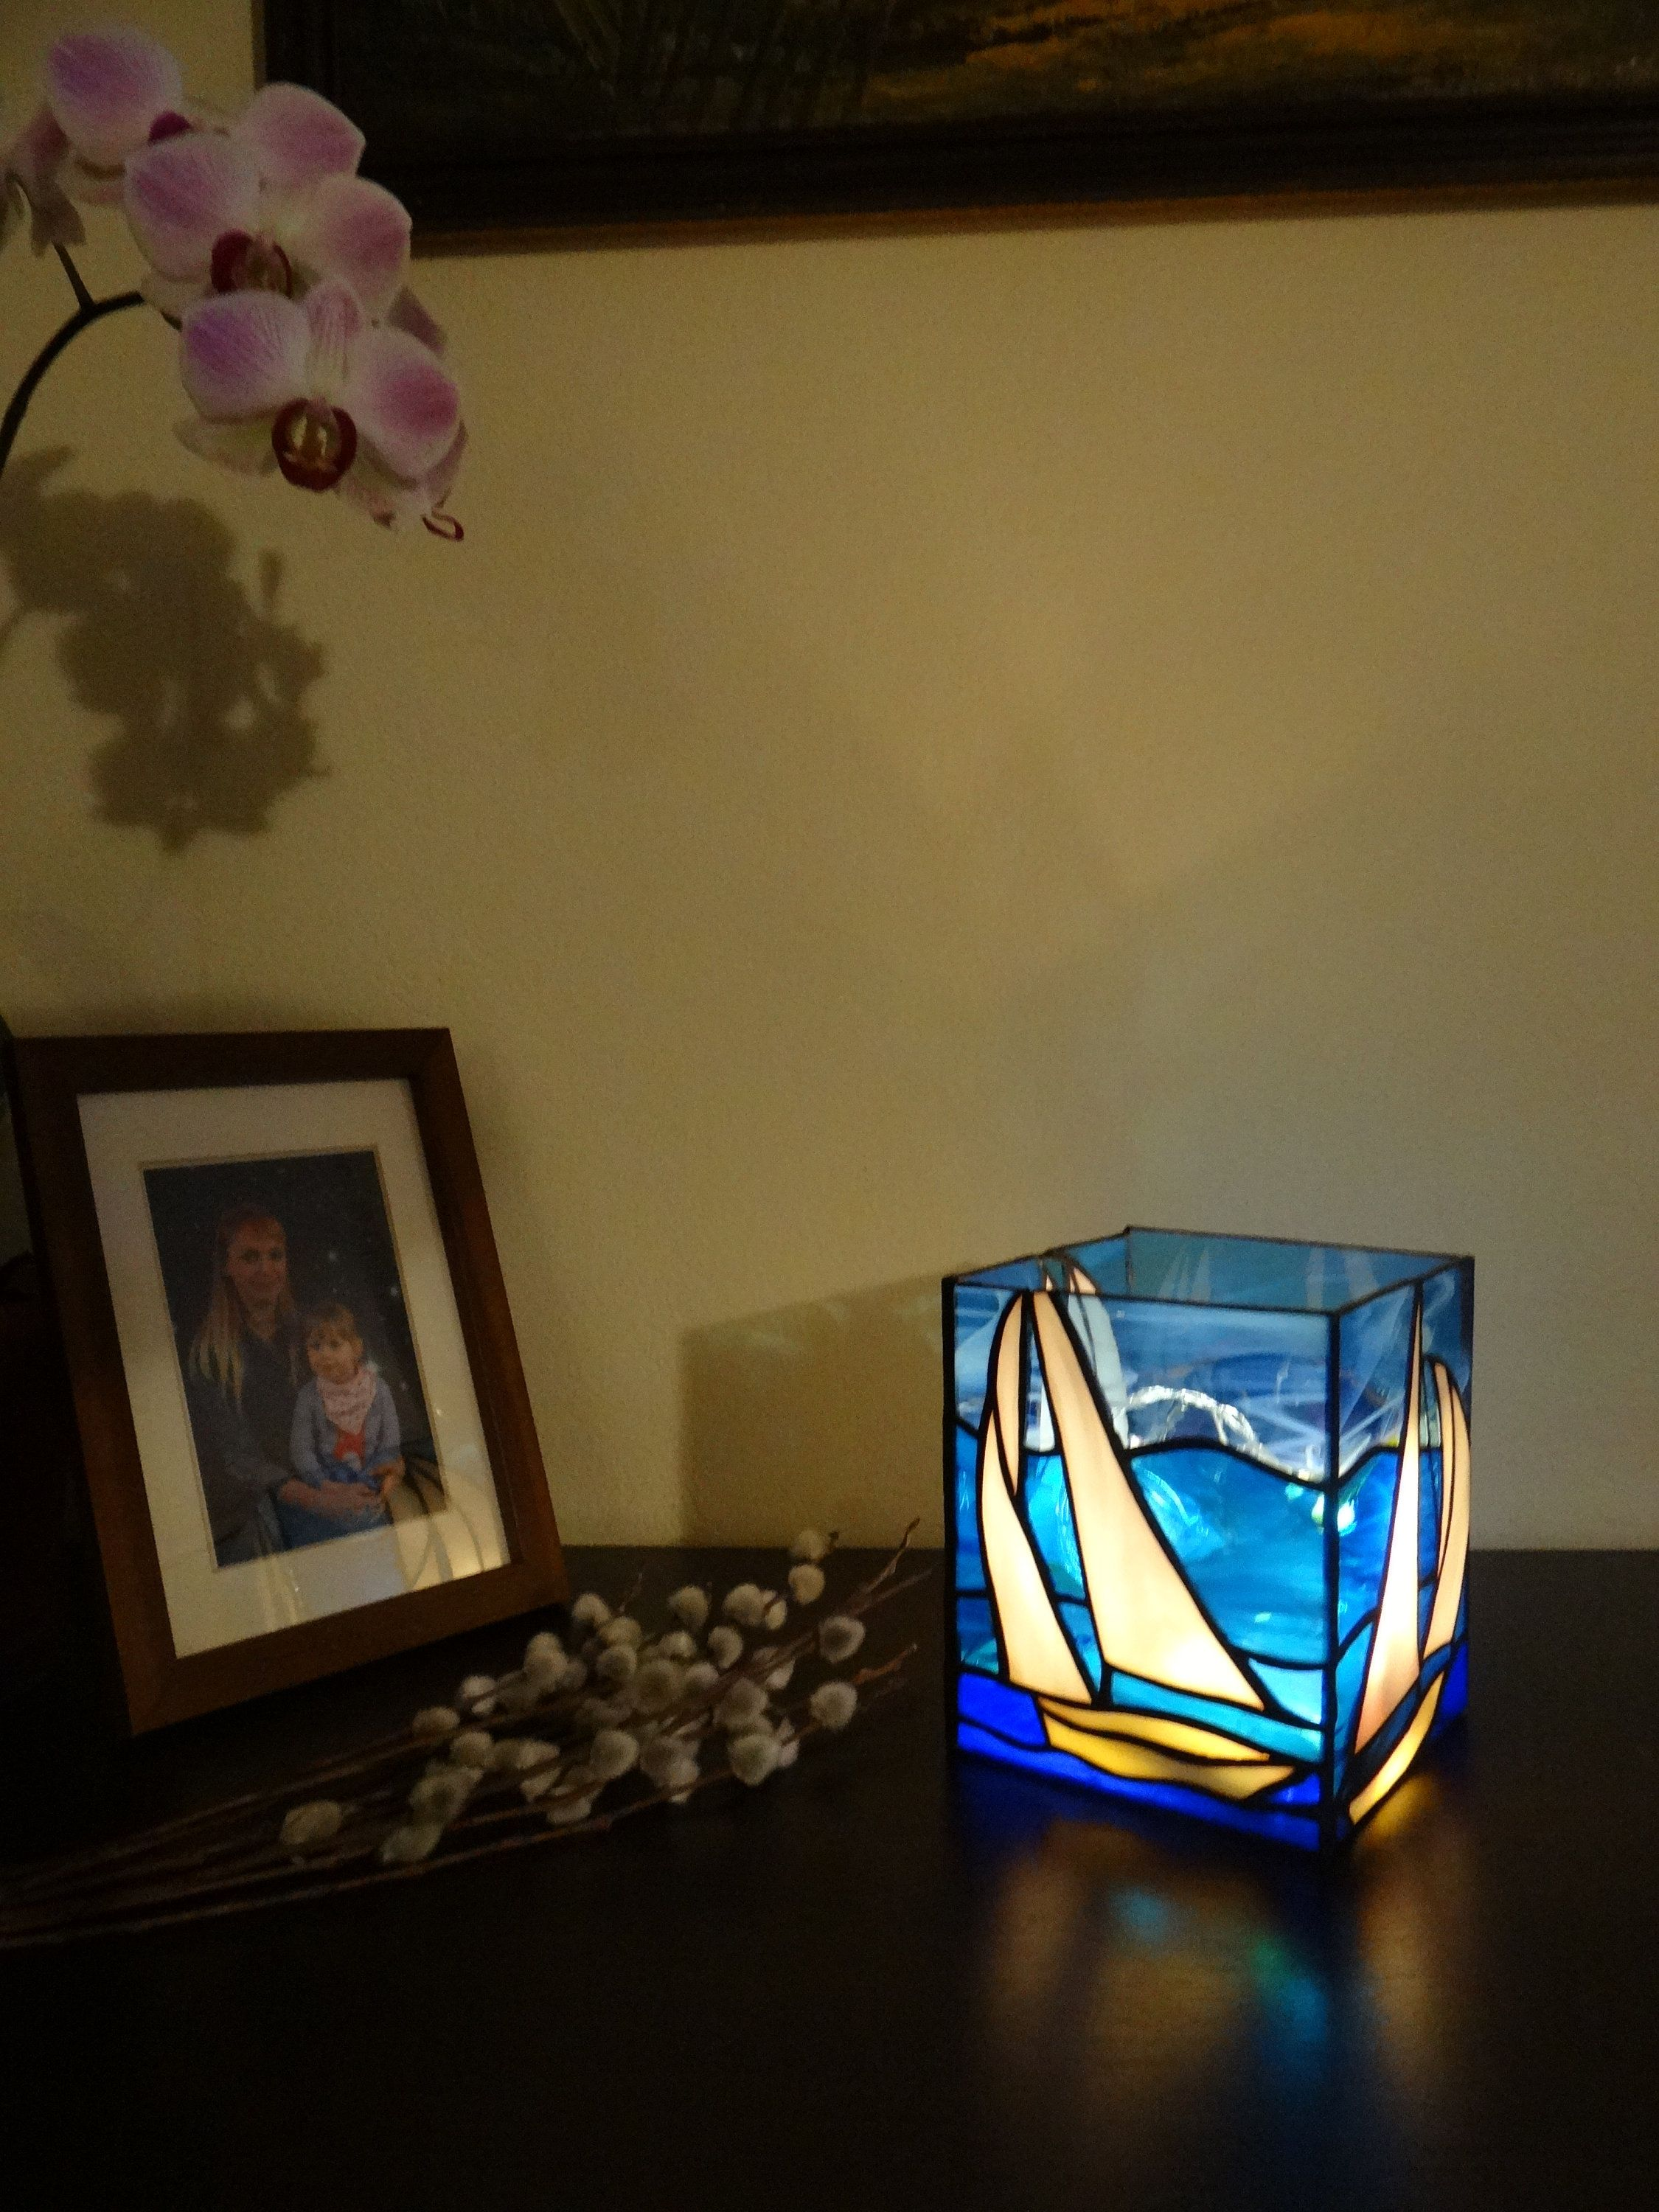 Sailboat Stained Glass Boat Candle Holder Light Box Lantern Handmade Tealight Nightlight Nautical Decor Illumination Led Bedside Lamp Glass Boat Stained Glass Candle Holders Glass Candle Holders